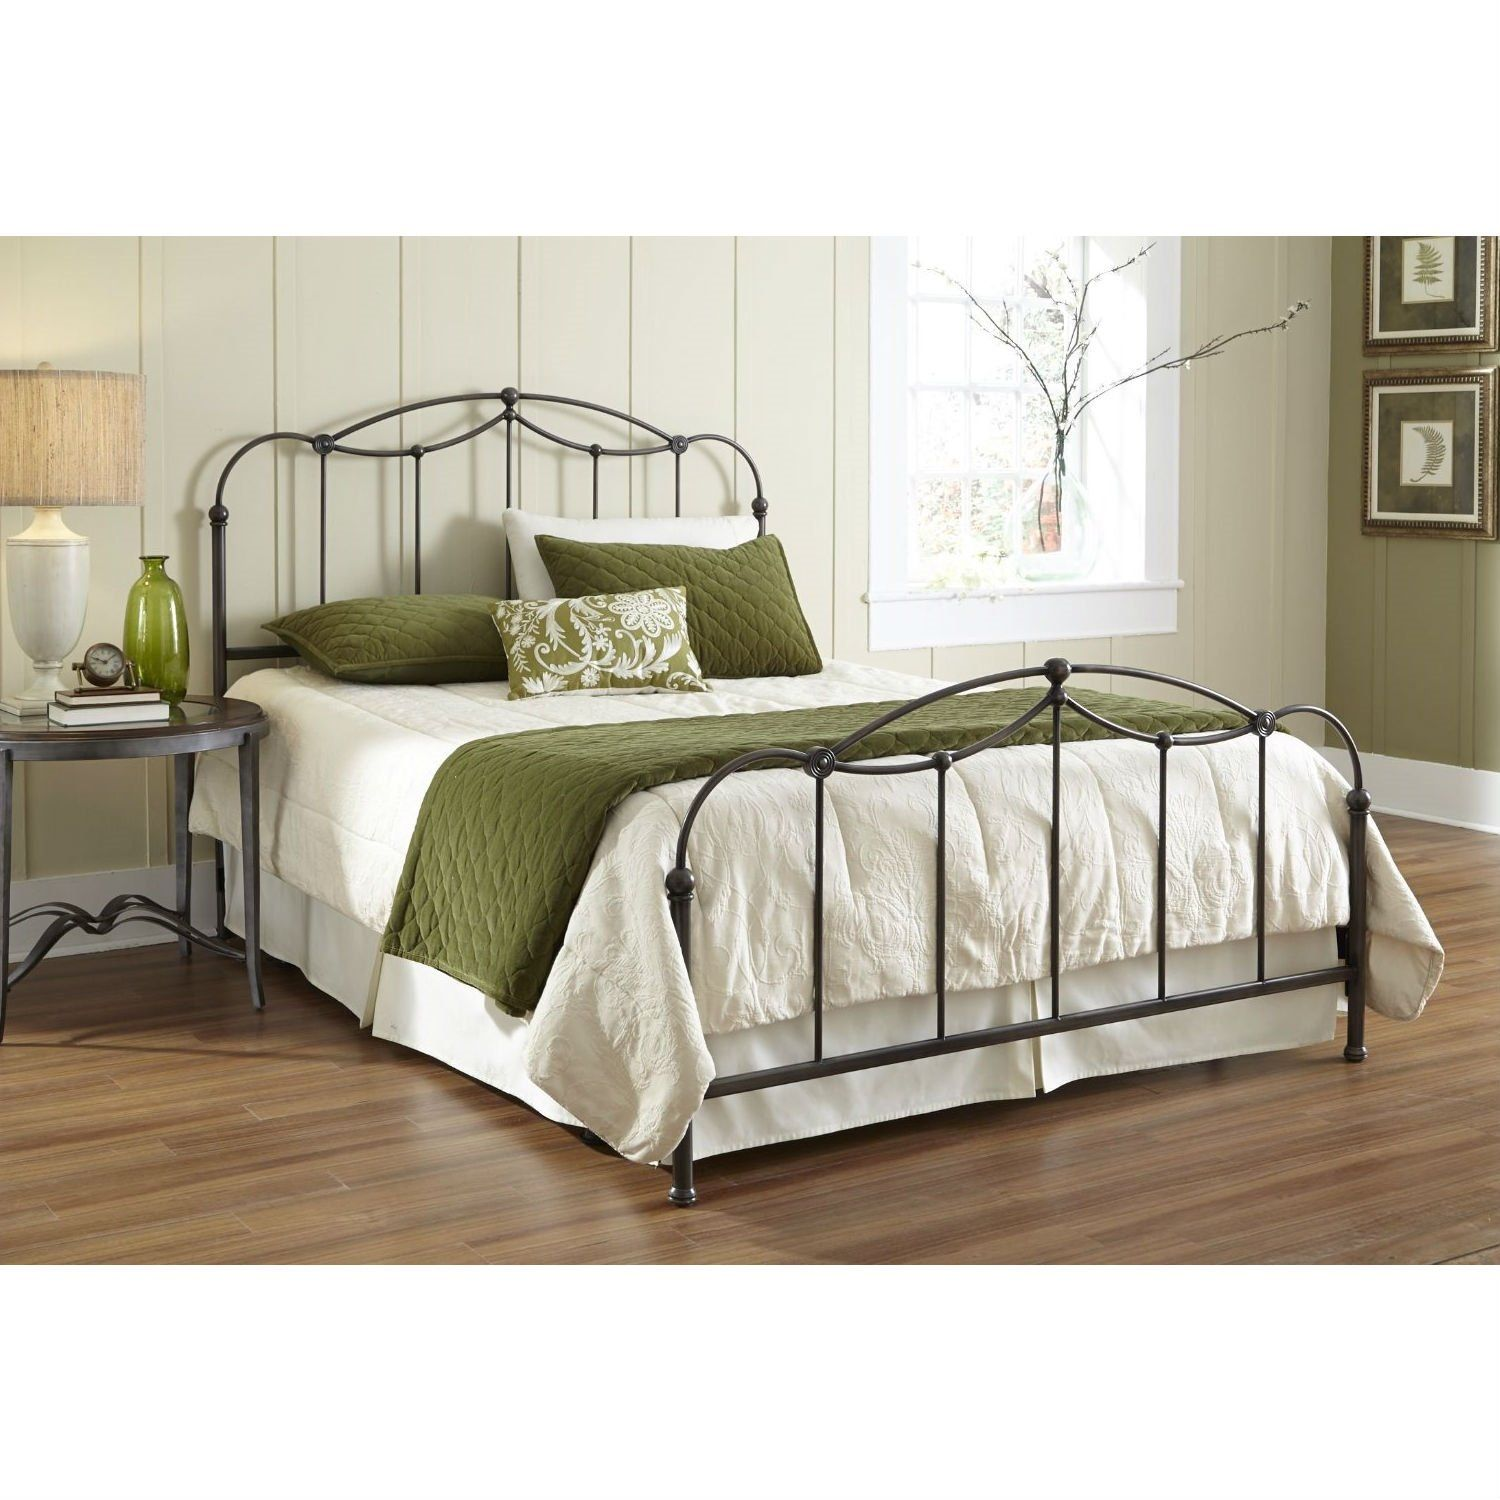 Queen Size Metal Bed Frame With Headboard And Footboard